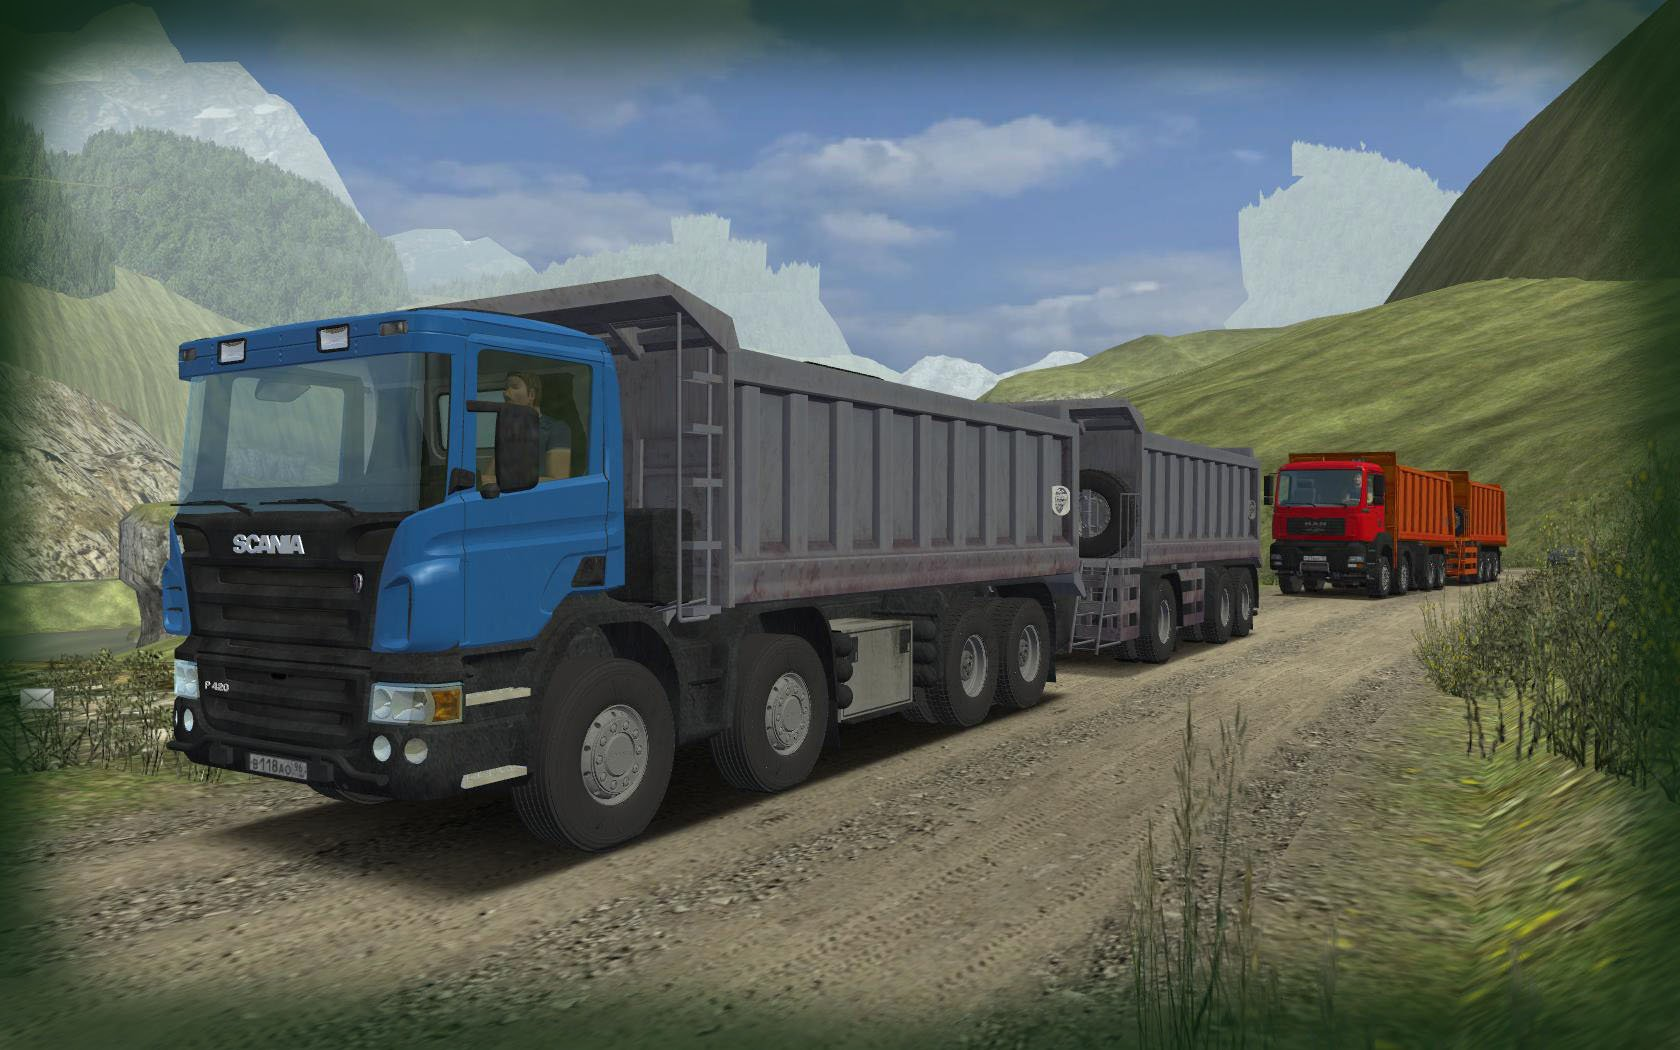 Scania P420 124C - cars catalog, specs, features, photos, videos, review,